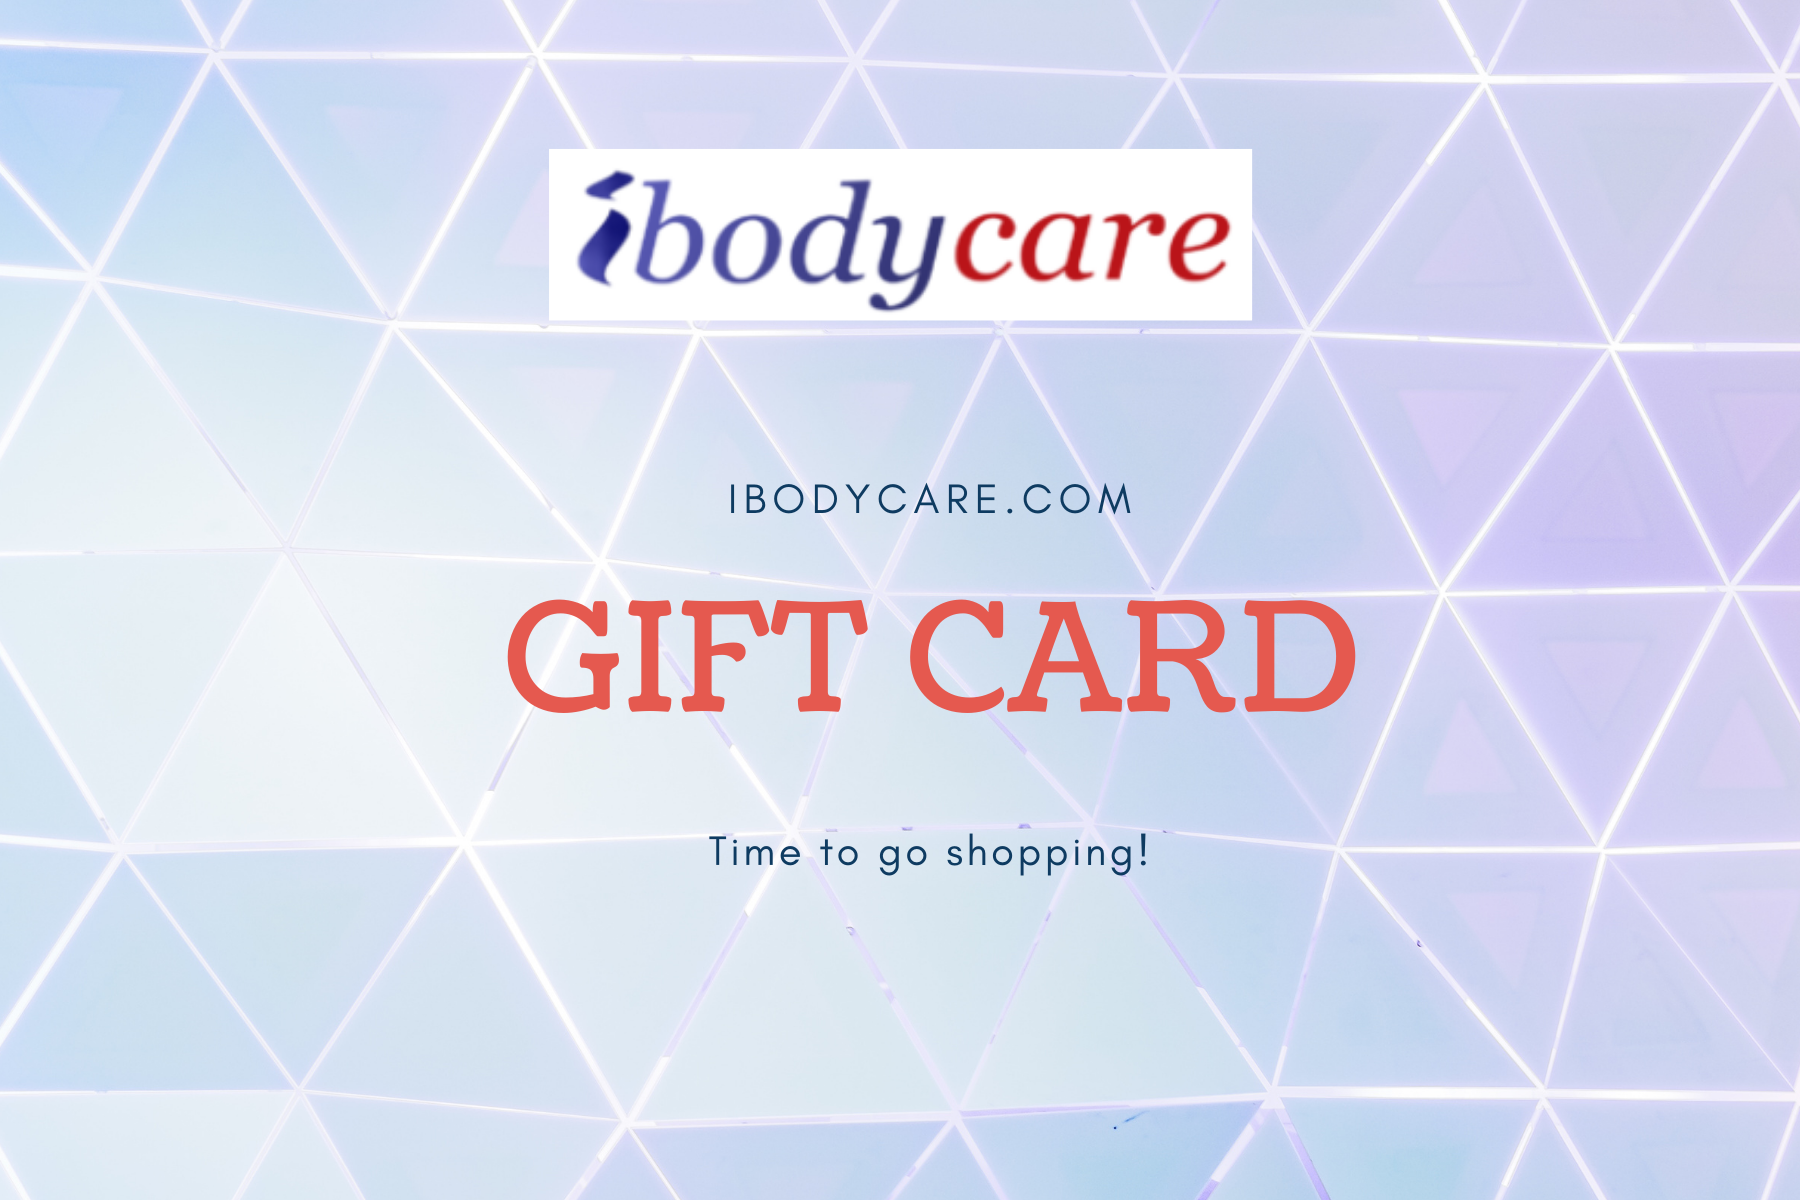 ibodycare Gift Card